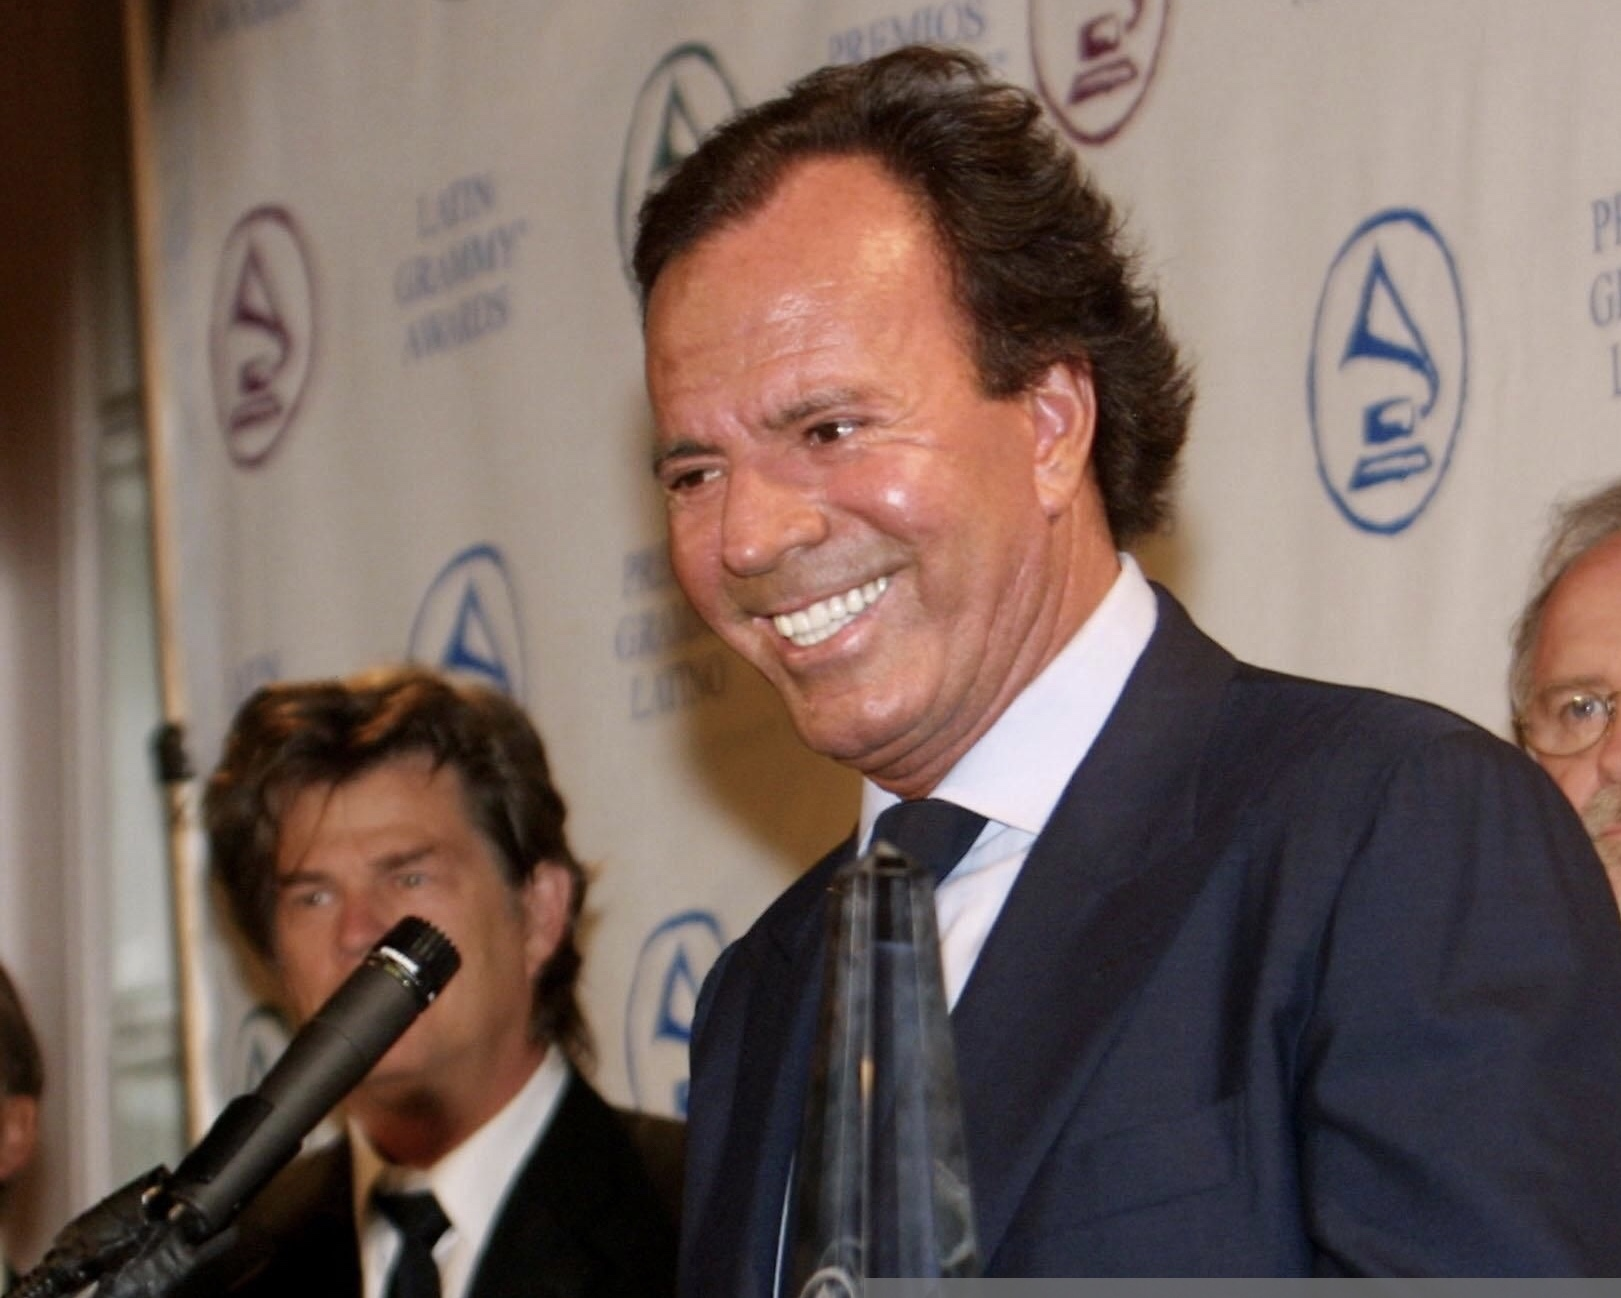 BEVERLY HILLS, UNITED STATES: Spanish singer Julio Iglesias (C) speaks to the the media as he holds the Latin Academy of Recording Arts and Sciences Person of the Year Award, presented to him prior to a gala tribute dinner 10 September, 2001 in Beverly Hills, CA. The Latin Grammys will be presented 11 September. AFP PHOTO/LEE CELANO (Photo credit should read LEE CELANO/AFP via Getty Images)